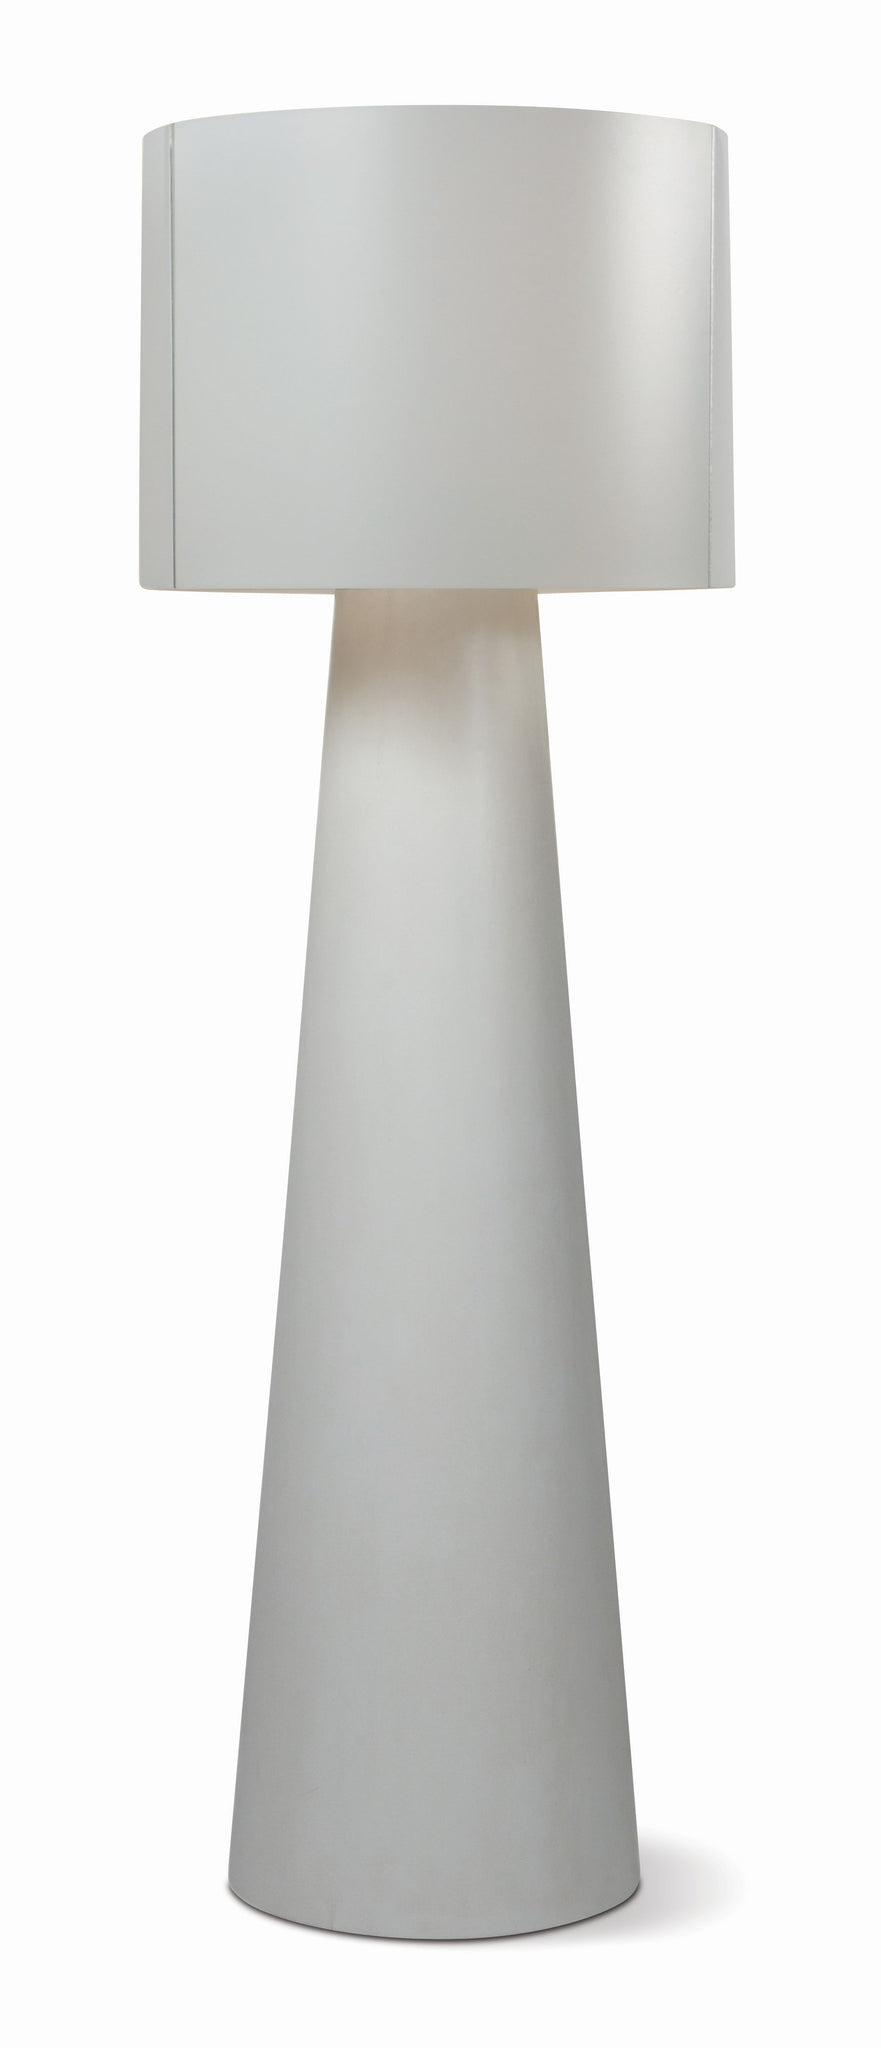 Picture of: Inda Cordless Outdoor Led Floor Lamp In Various Colors Shades By Bd Burke Decor